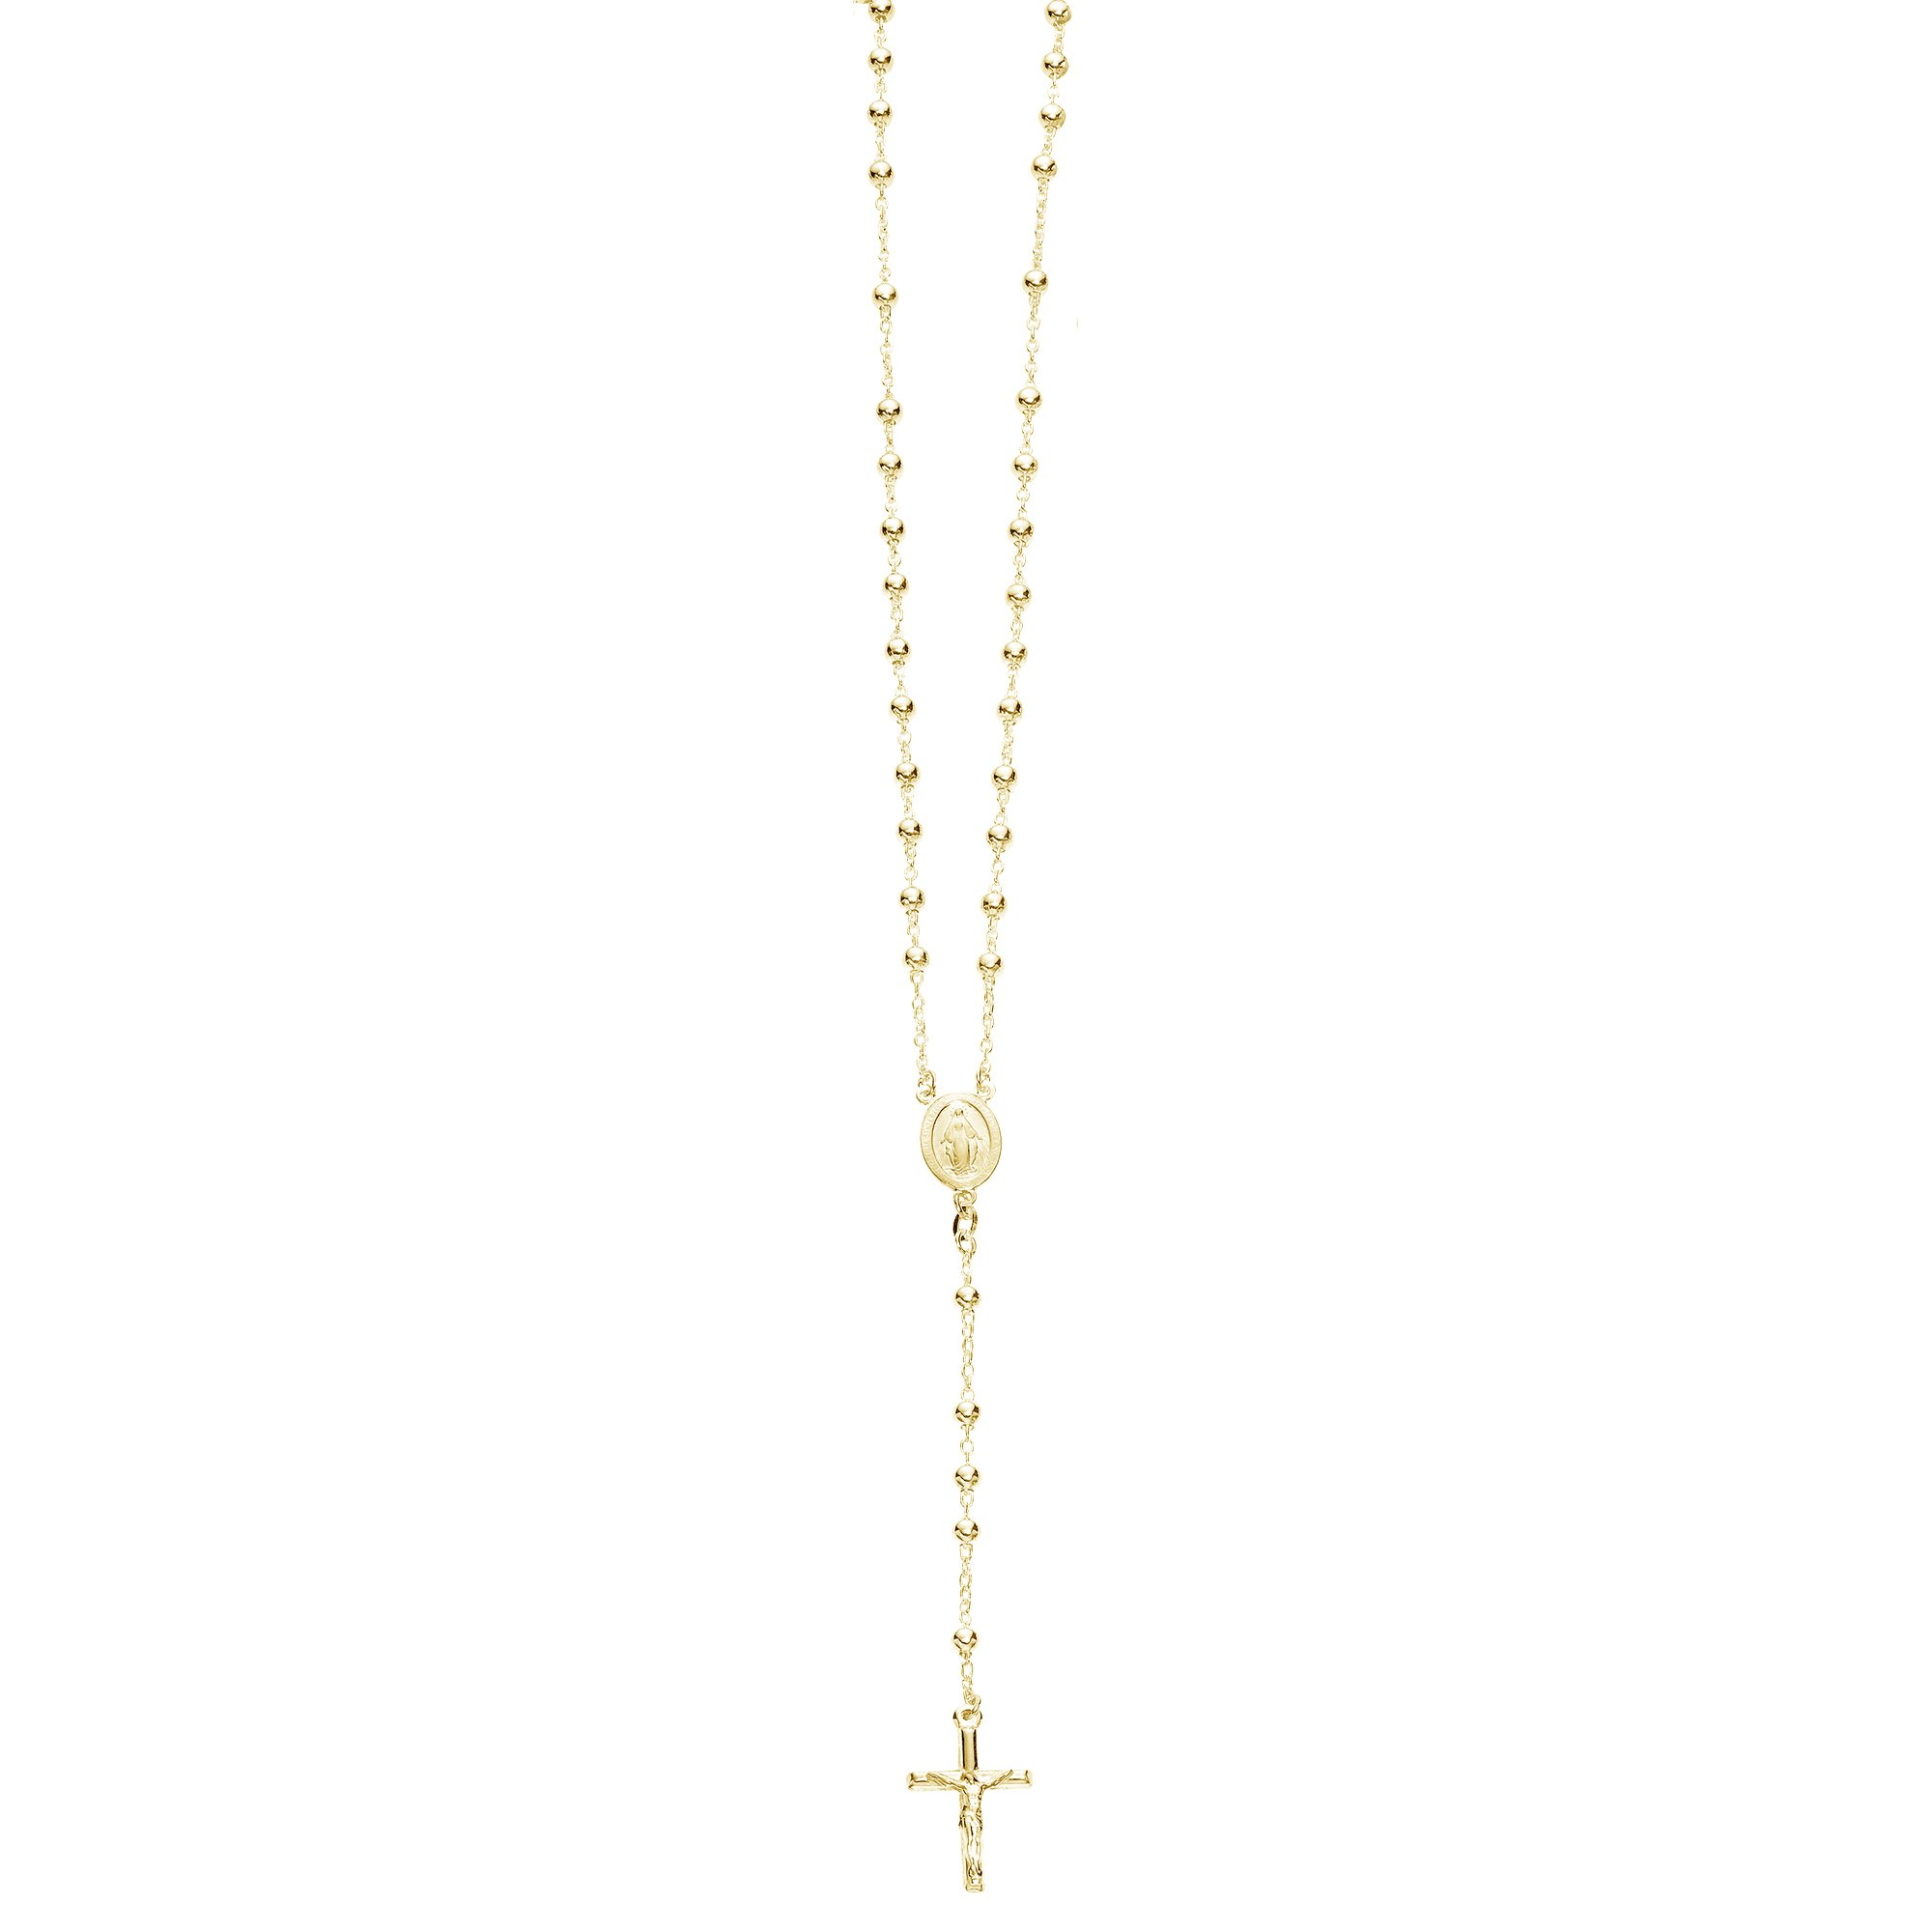 Sterling Silver Gold-tone 4mm Rosary Bead Necklace Virgin Mary Cross Made in Italy (24 Inches)